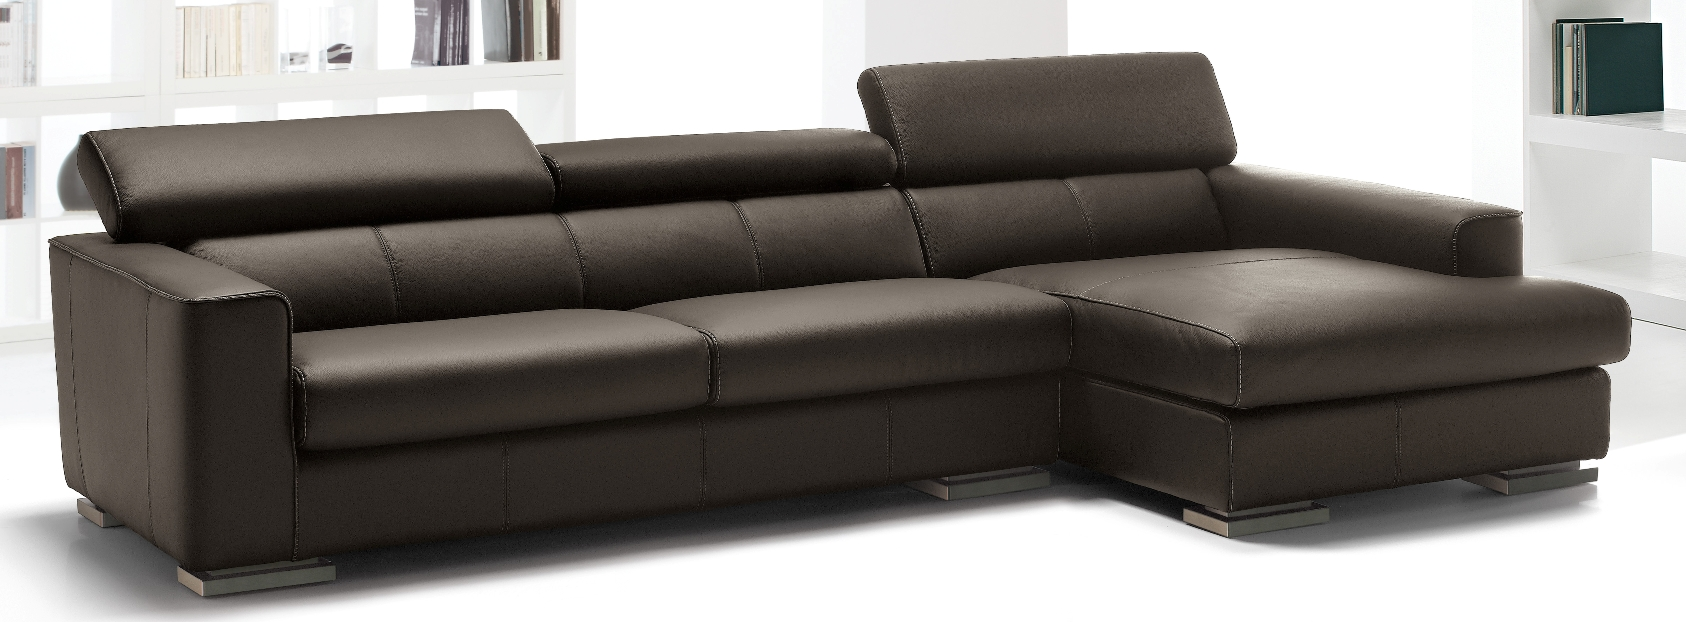 Modern luxury leather sofa fine home furnishings high for All home decor furniture